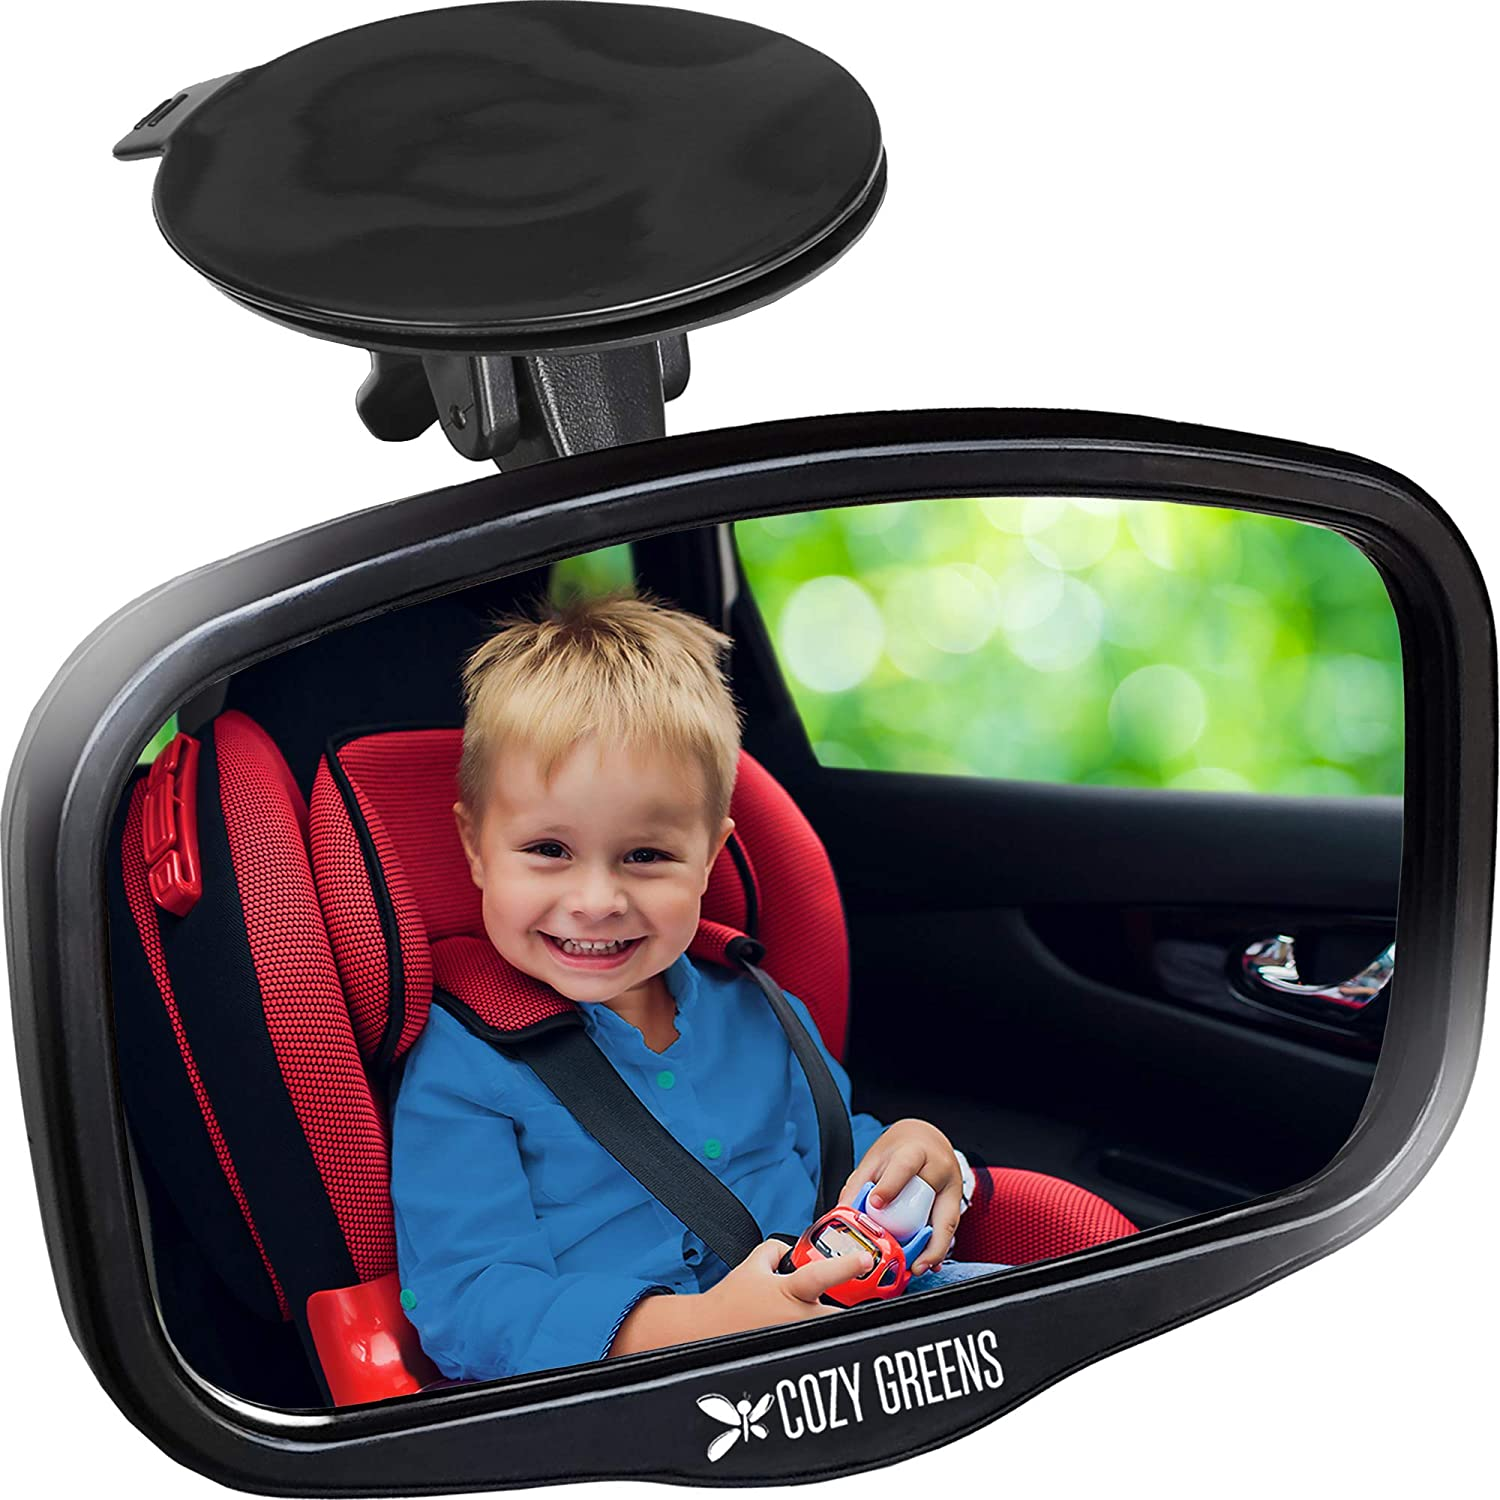 COZY GREENS Baby Car Mirror for Windshield